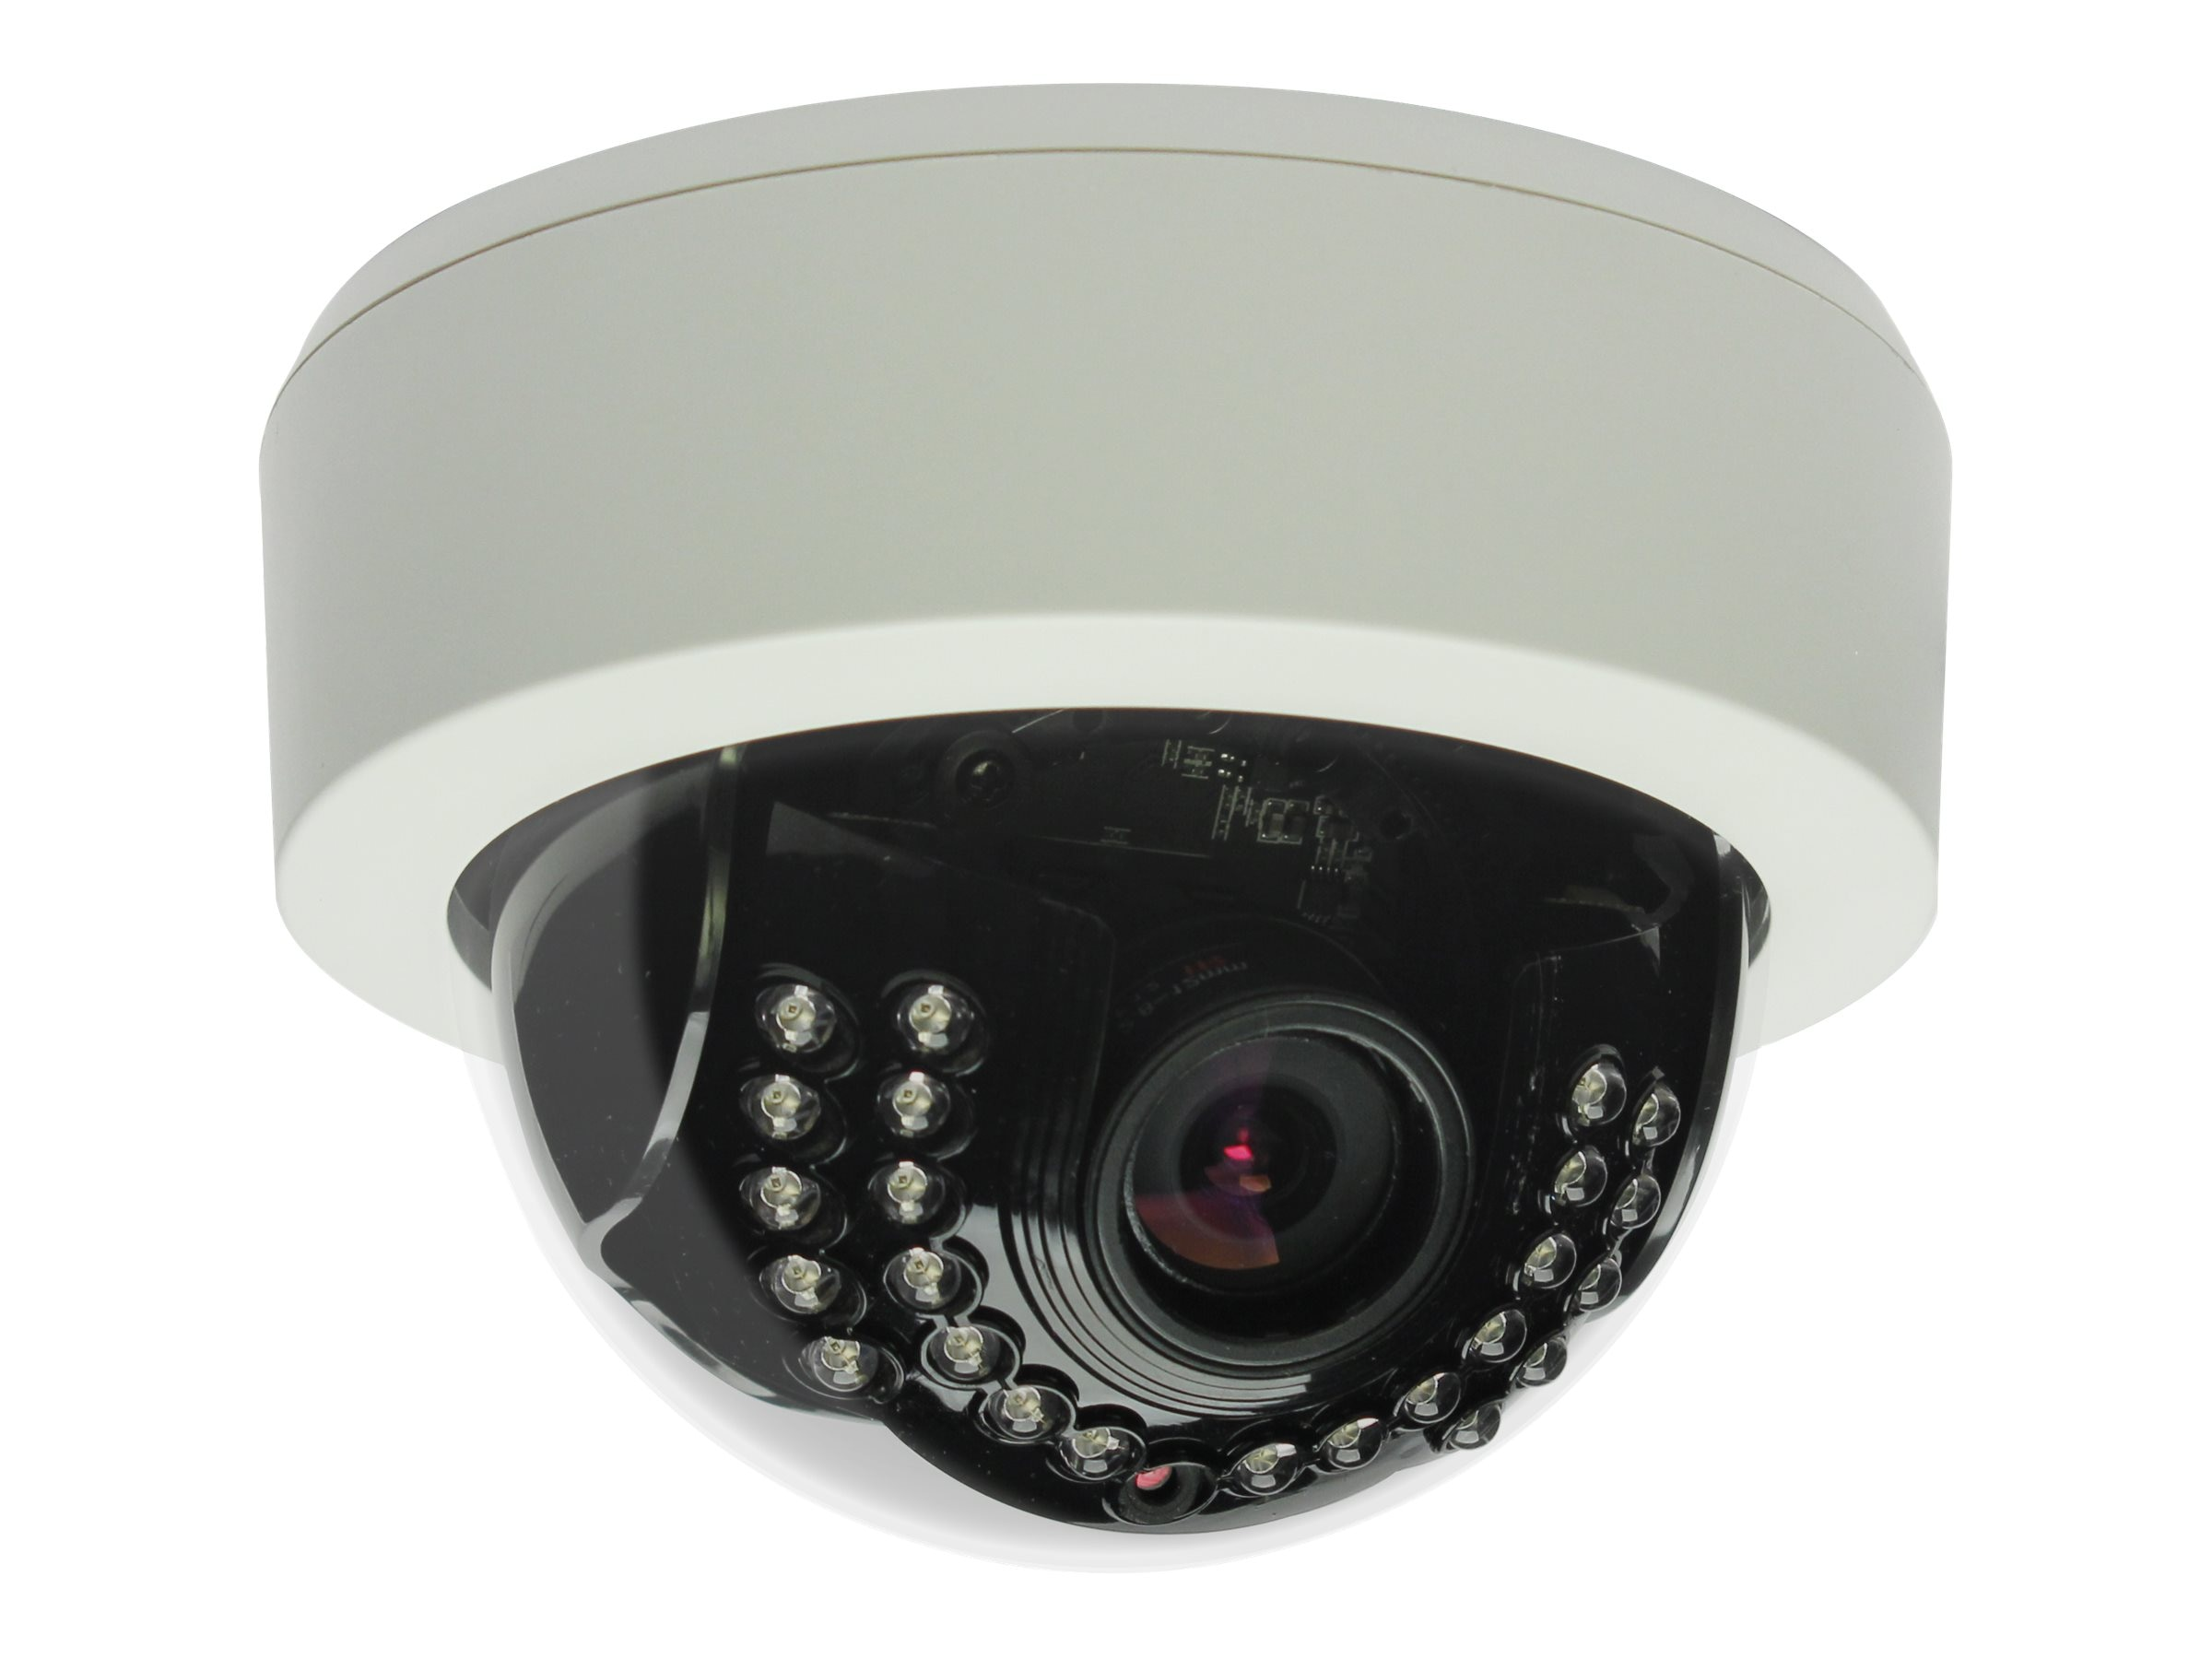 Toshiba 960H Indoor Day Night True WDR Analog Dome Camera